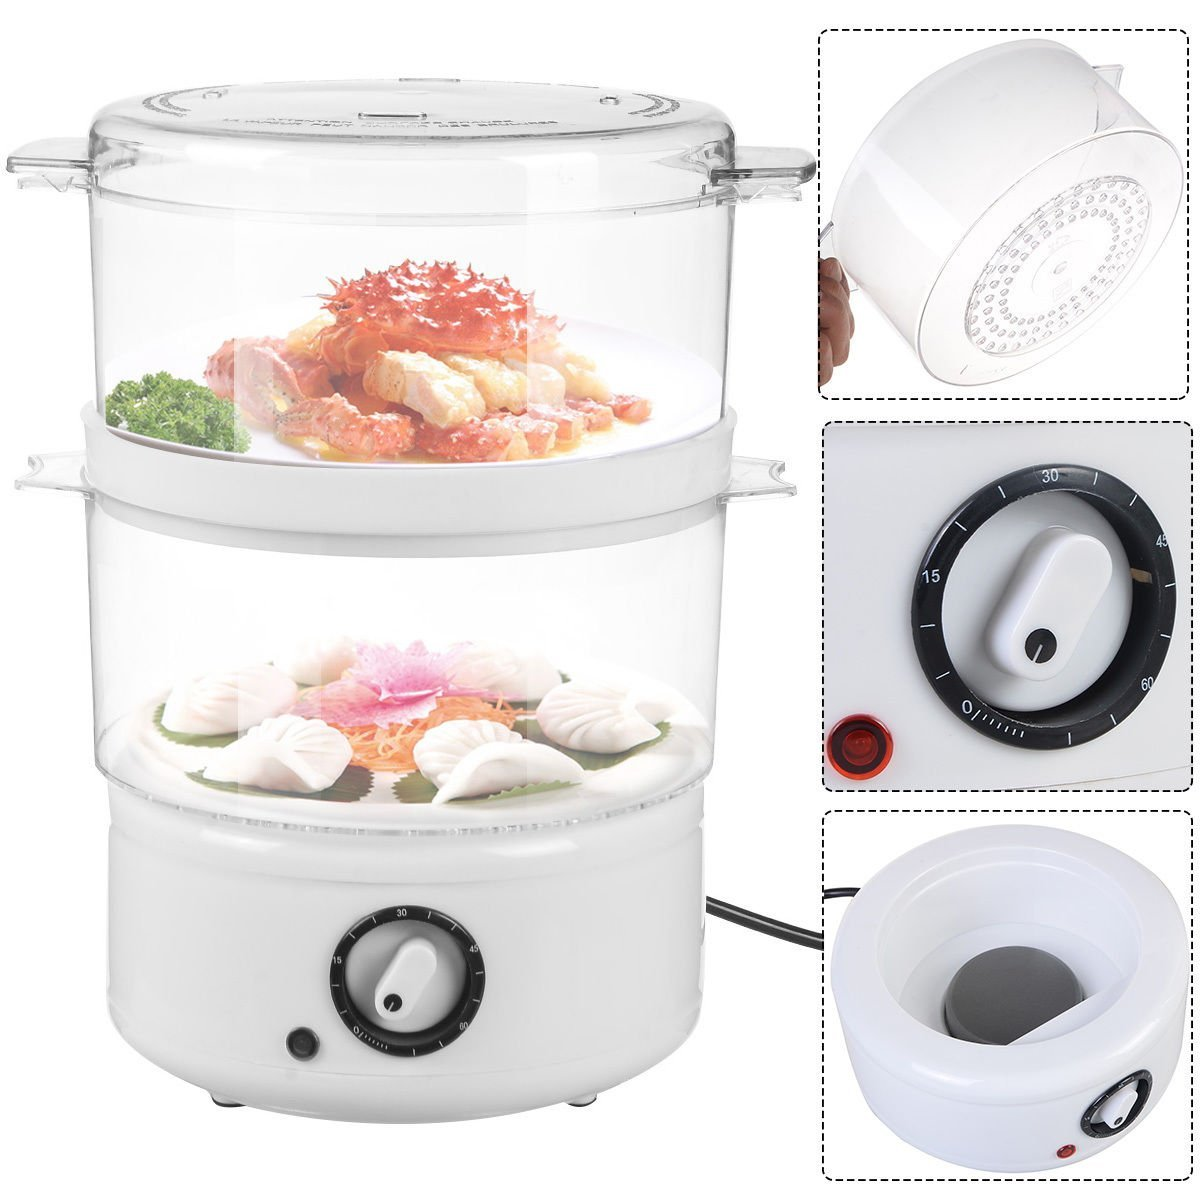 Electric Kitchen Food Steamer Steaming Bowl Cooking Meal Vegetable